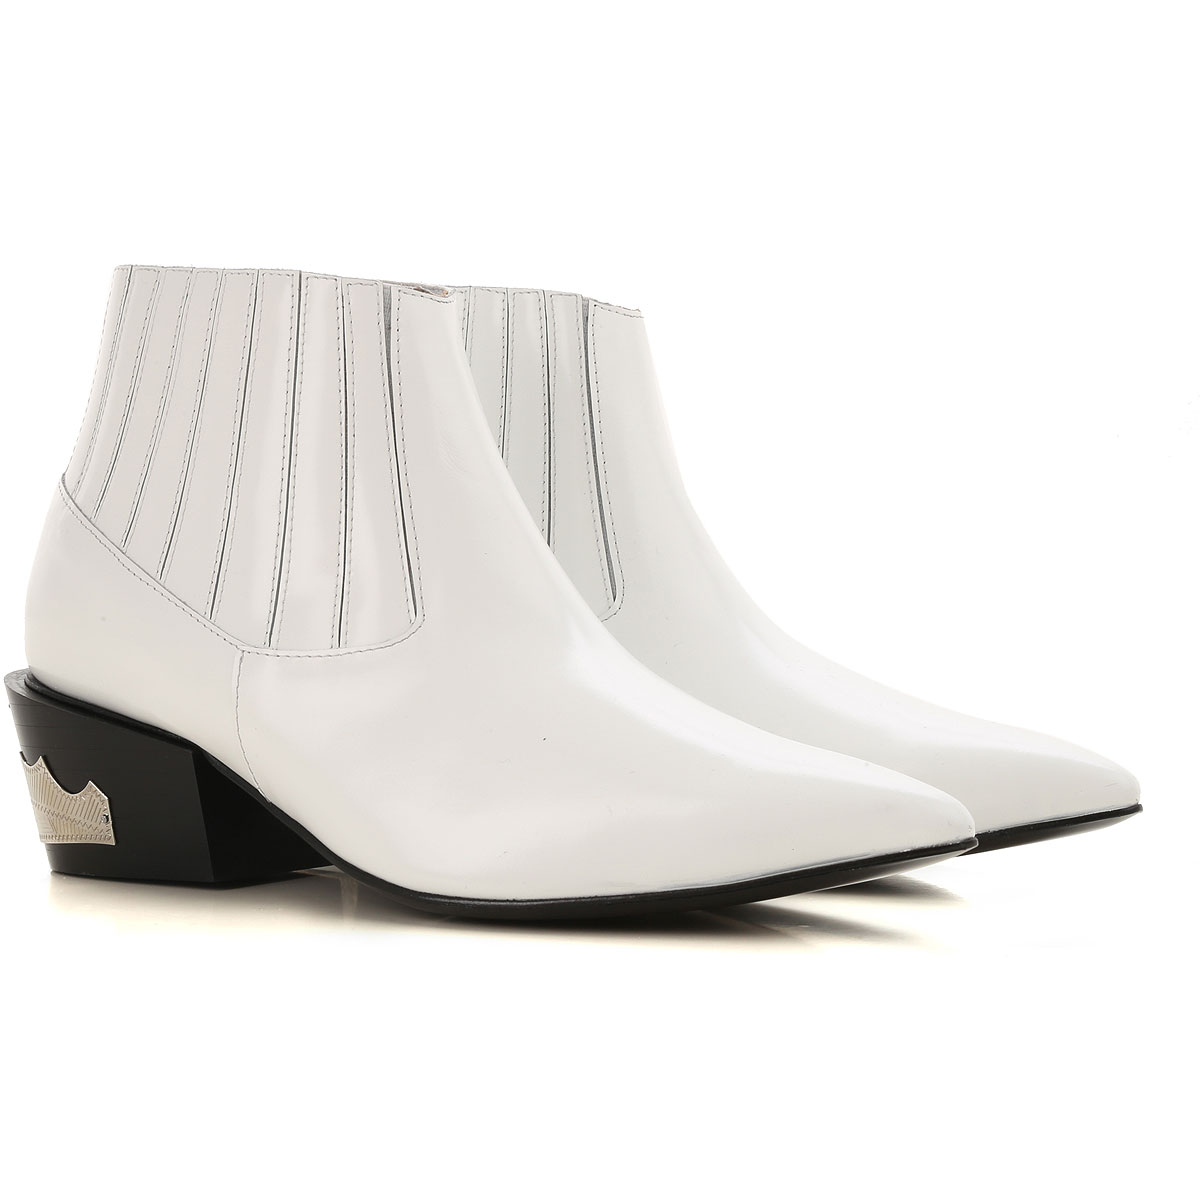 Image of Toga Pulla Boots for Women, Booties, White, Leather, 2017, 10 11 6.5 7 8 8.5 9